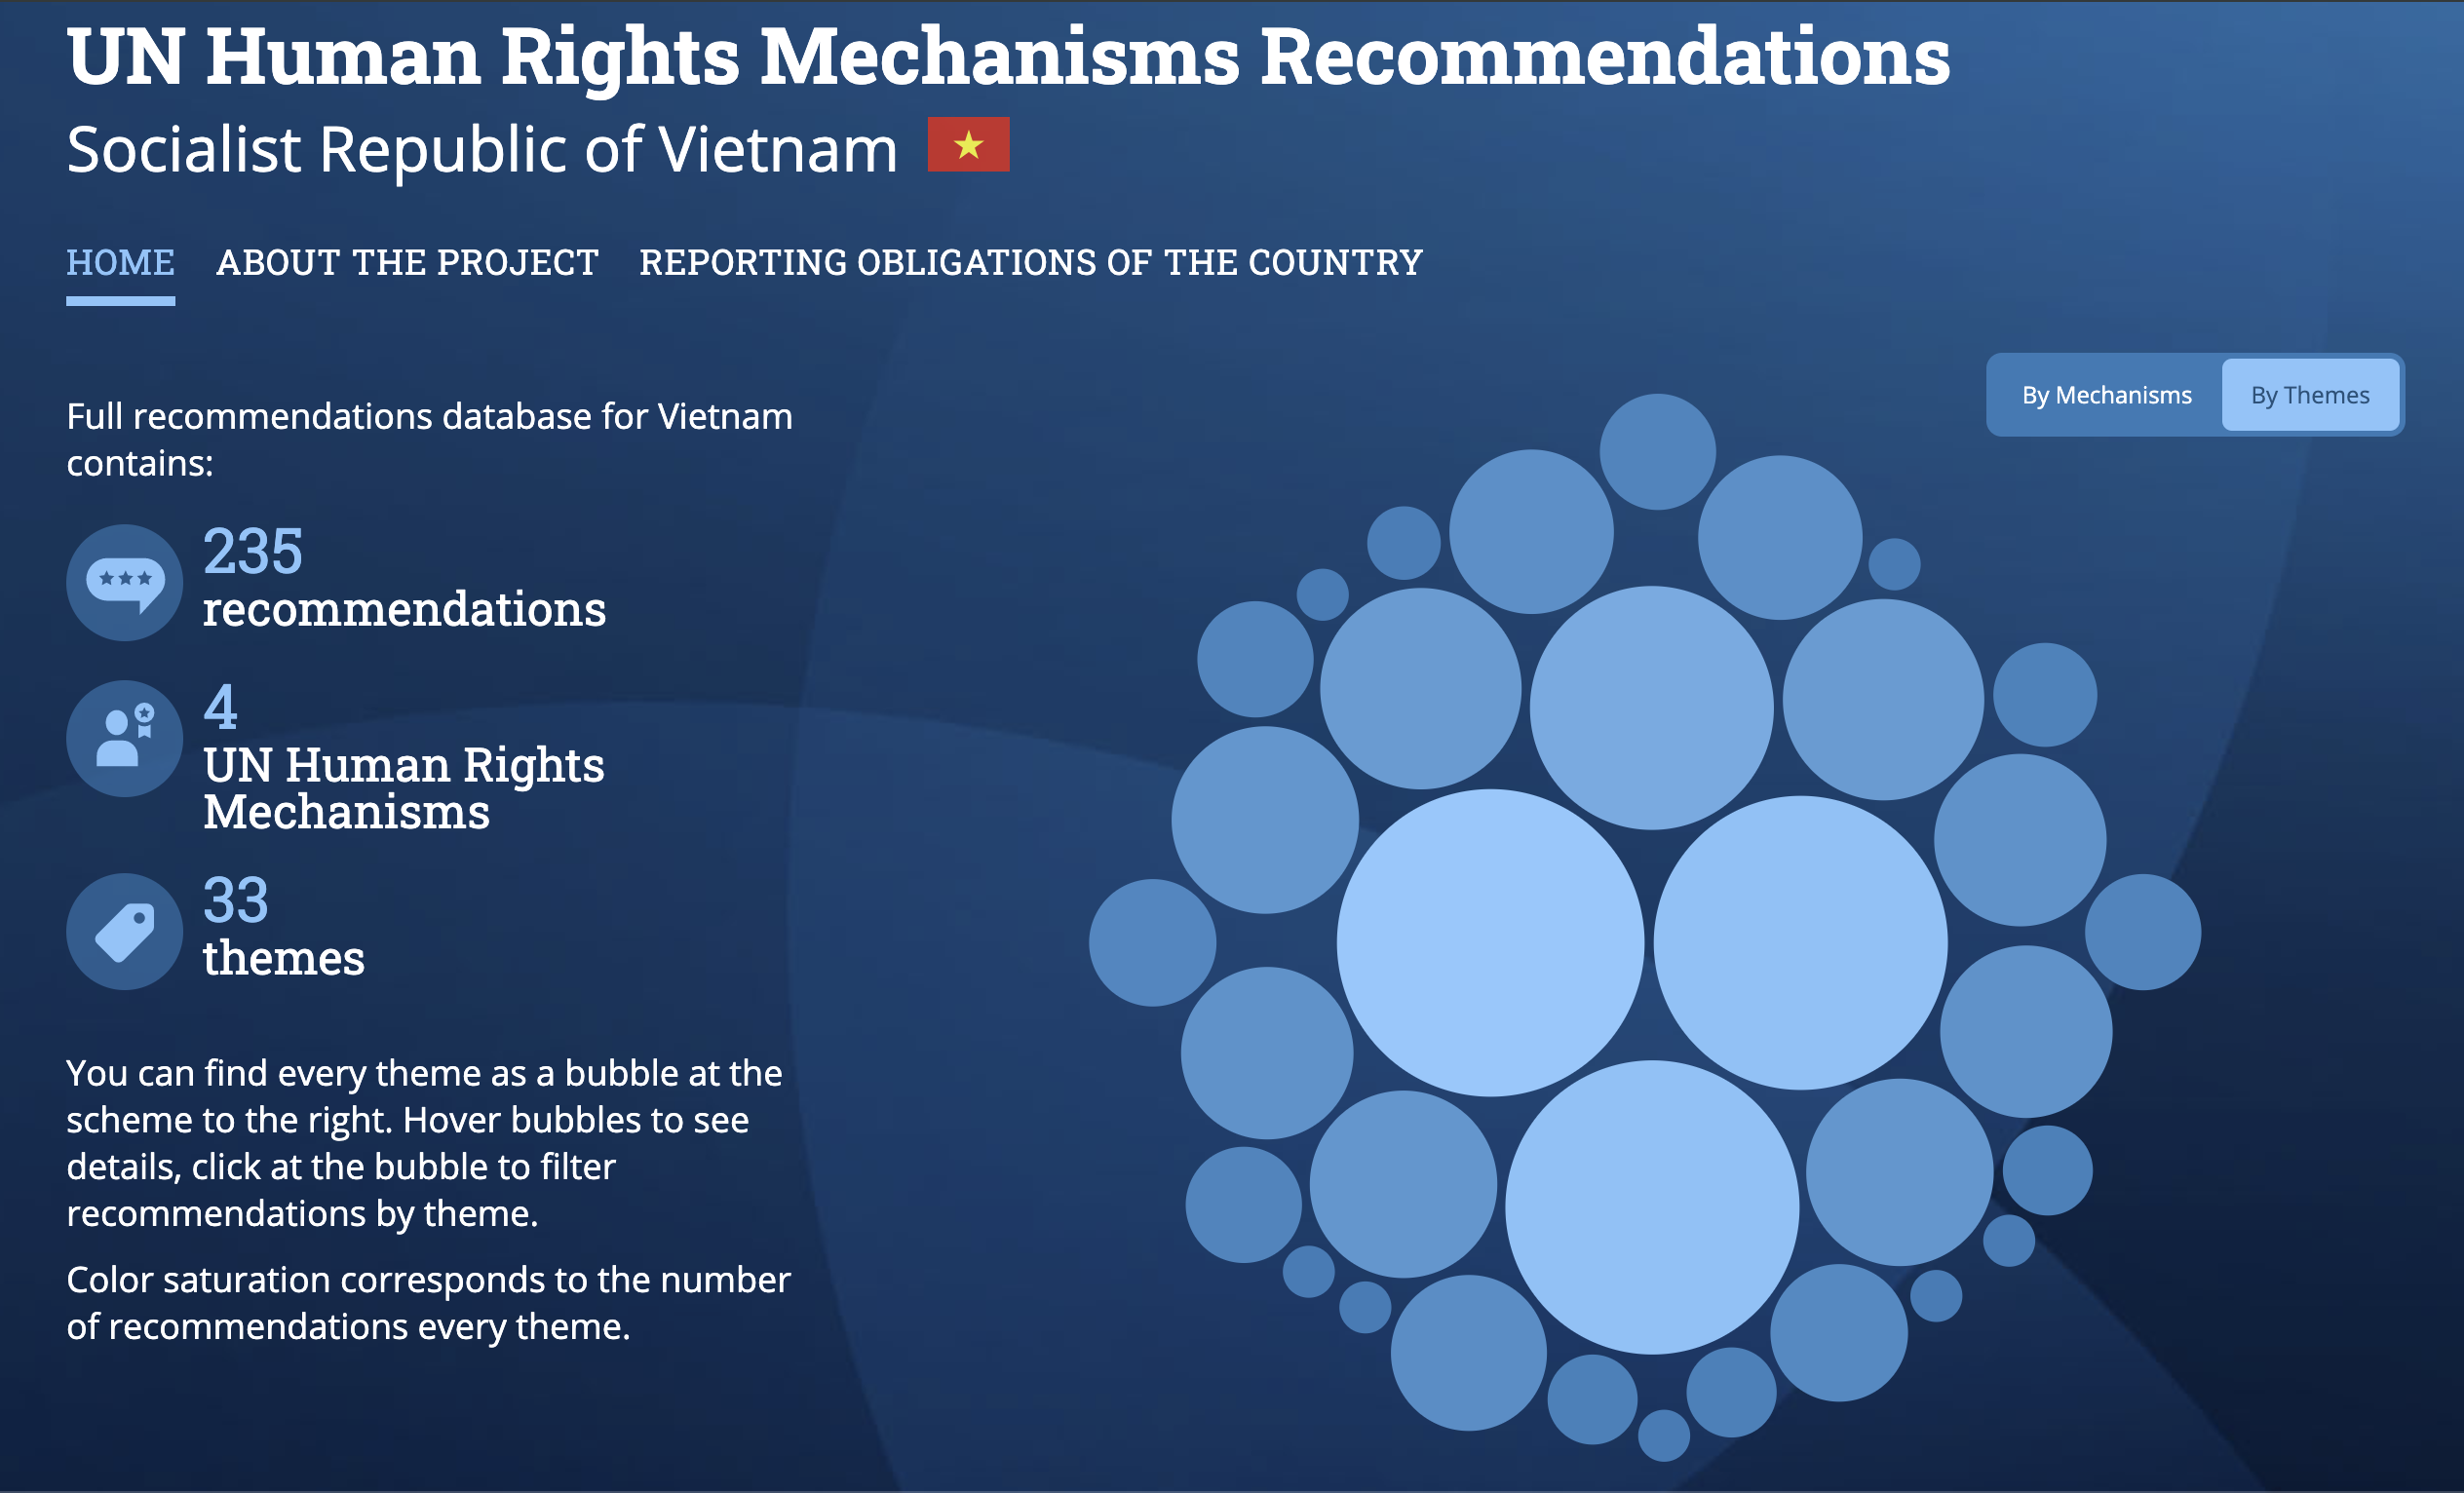 The Centre launches online tools to track recommendations issued by UN HR Mechanisms